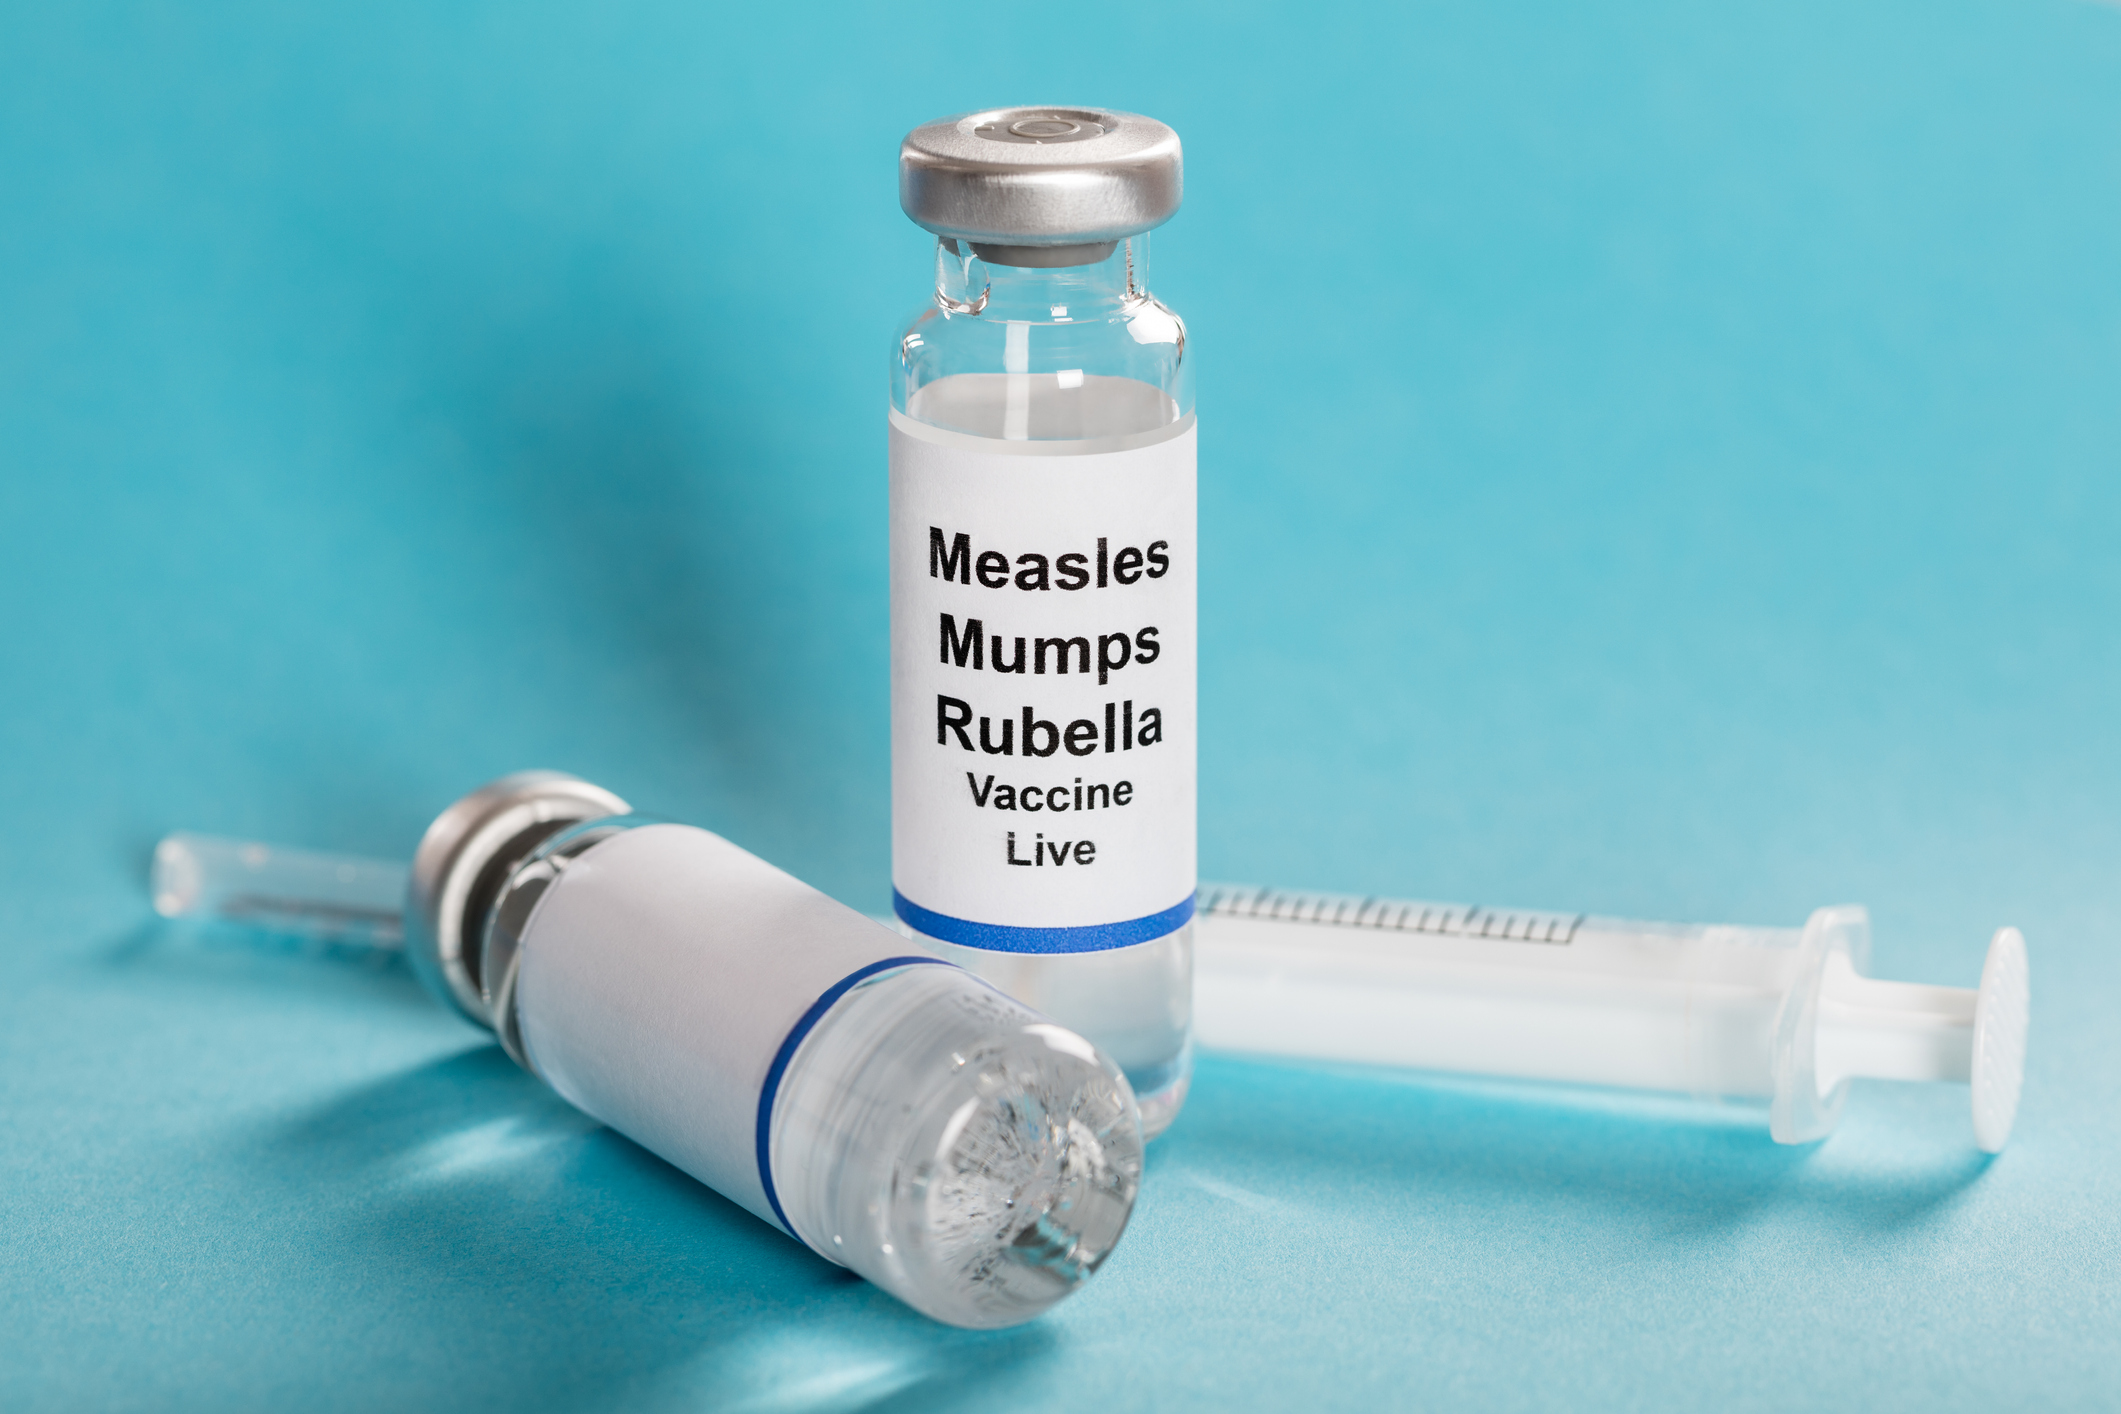 Measles Mumps Rubella (MMR) Vaccine Vials With Syringe.